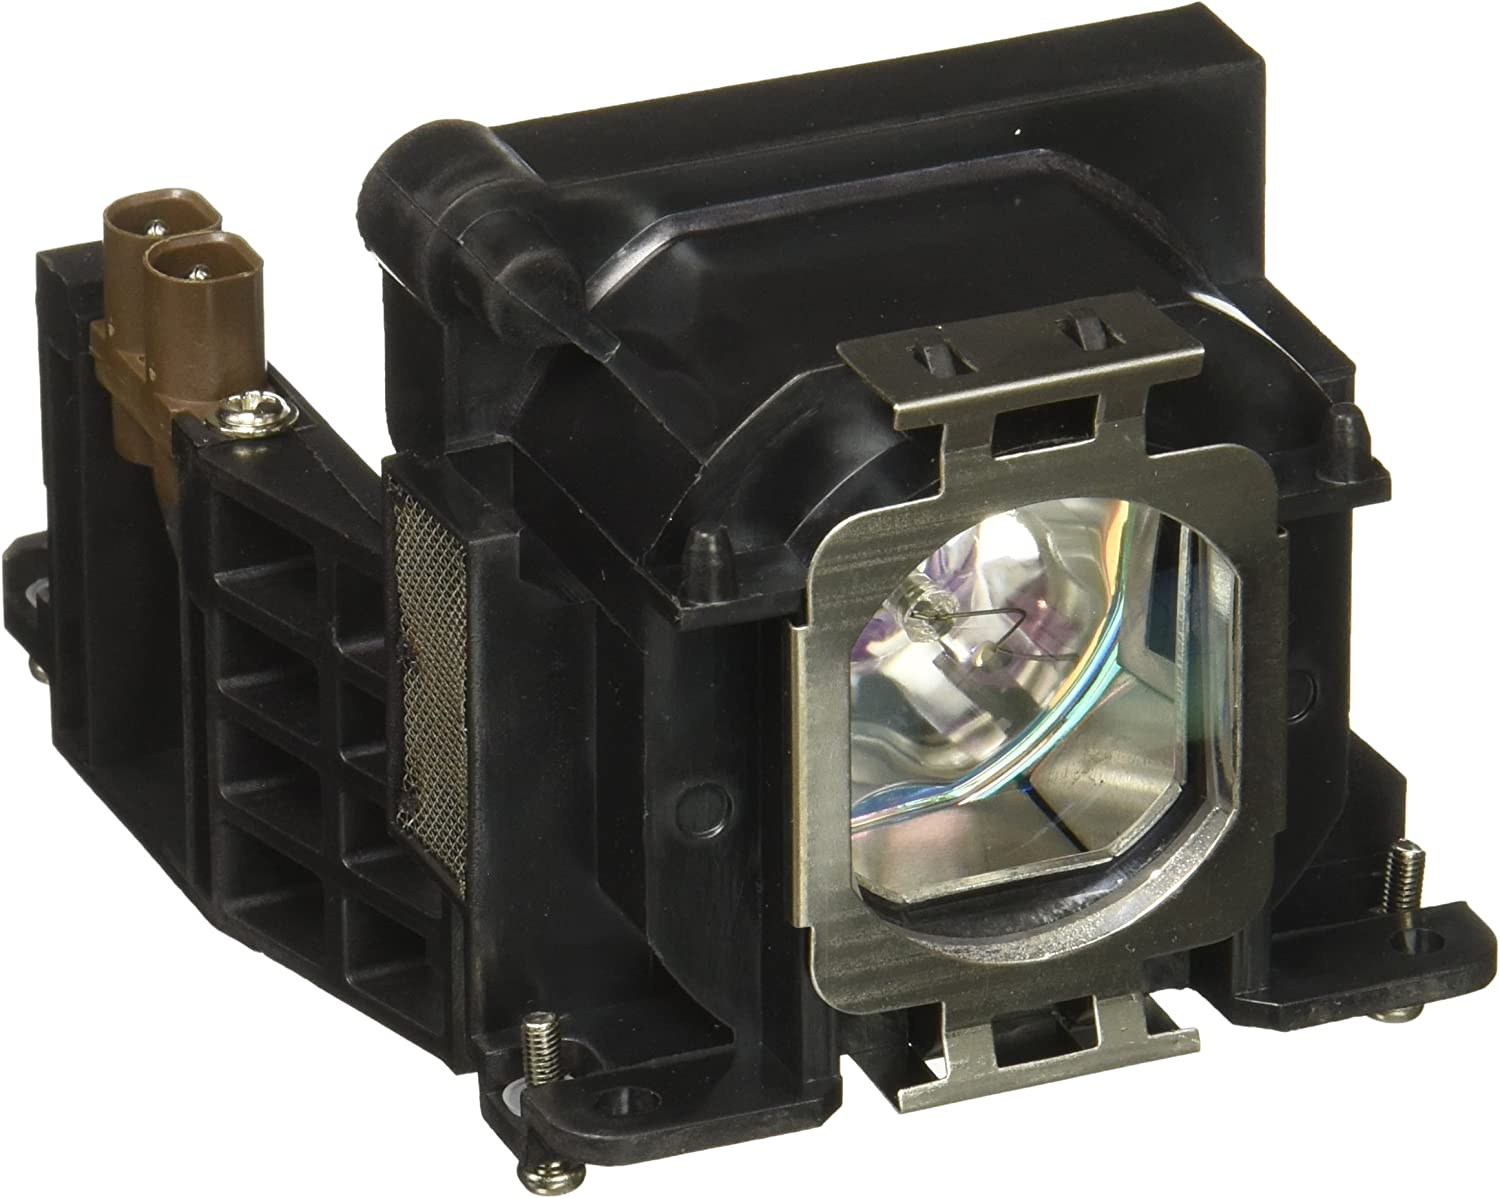 BUSlink Replacement Lamp LMP-H160 for SONY 3 LCD Projector VPL-AW10 / VPL-AW15 / VPL-AW10S / VPL-AW15S / VPL-AW15KT